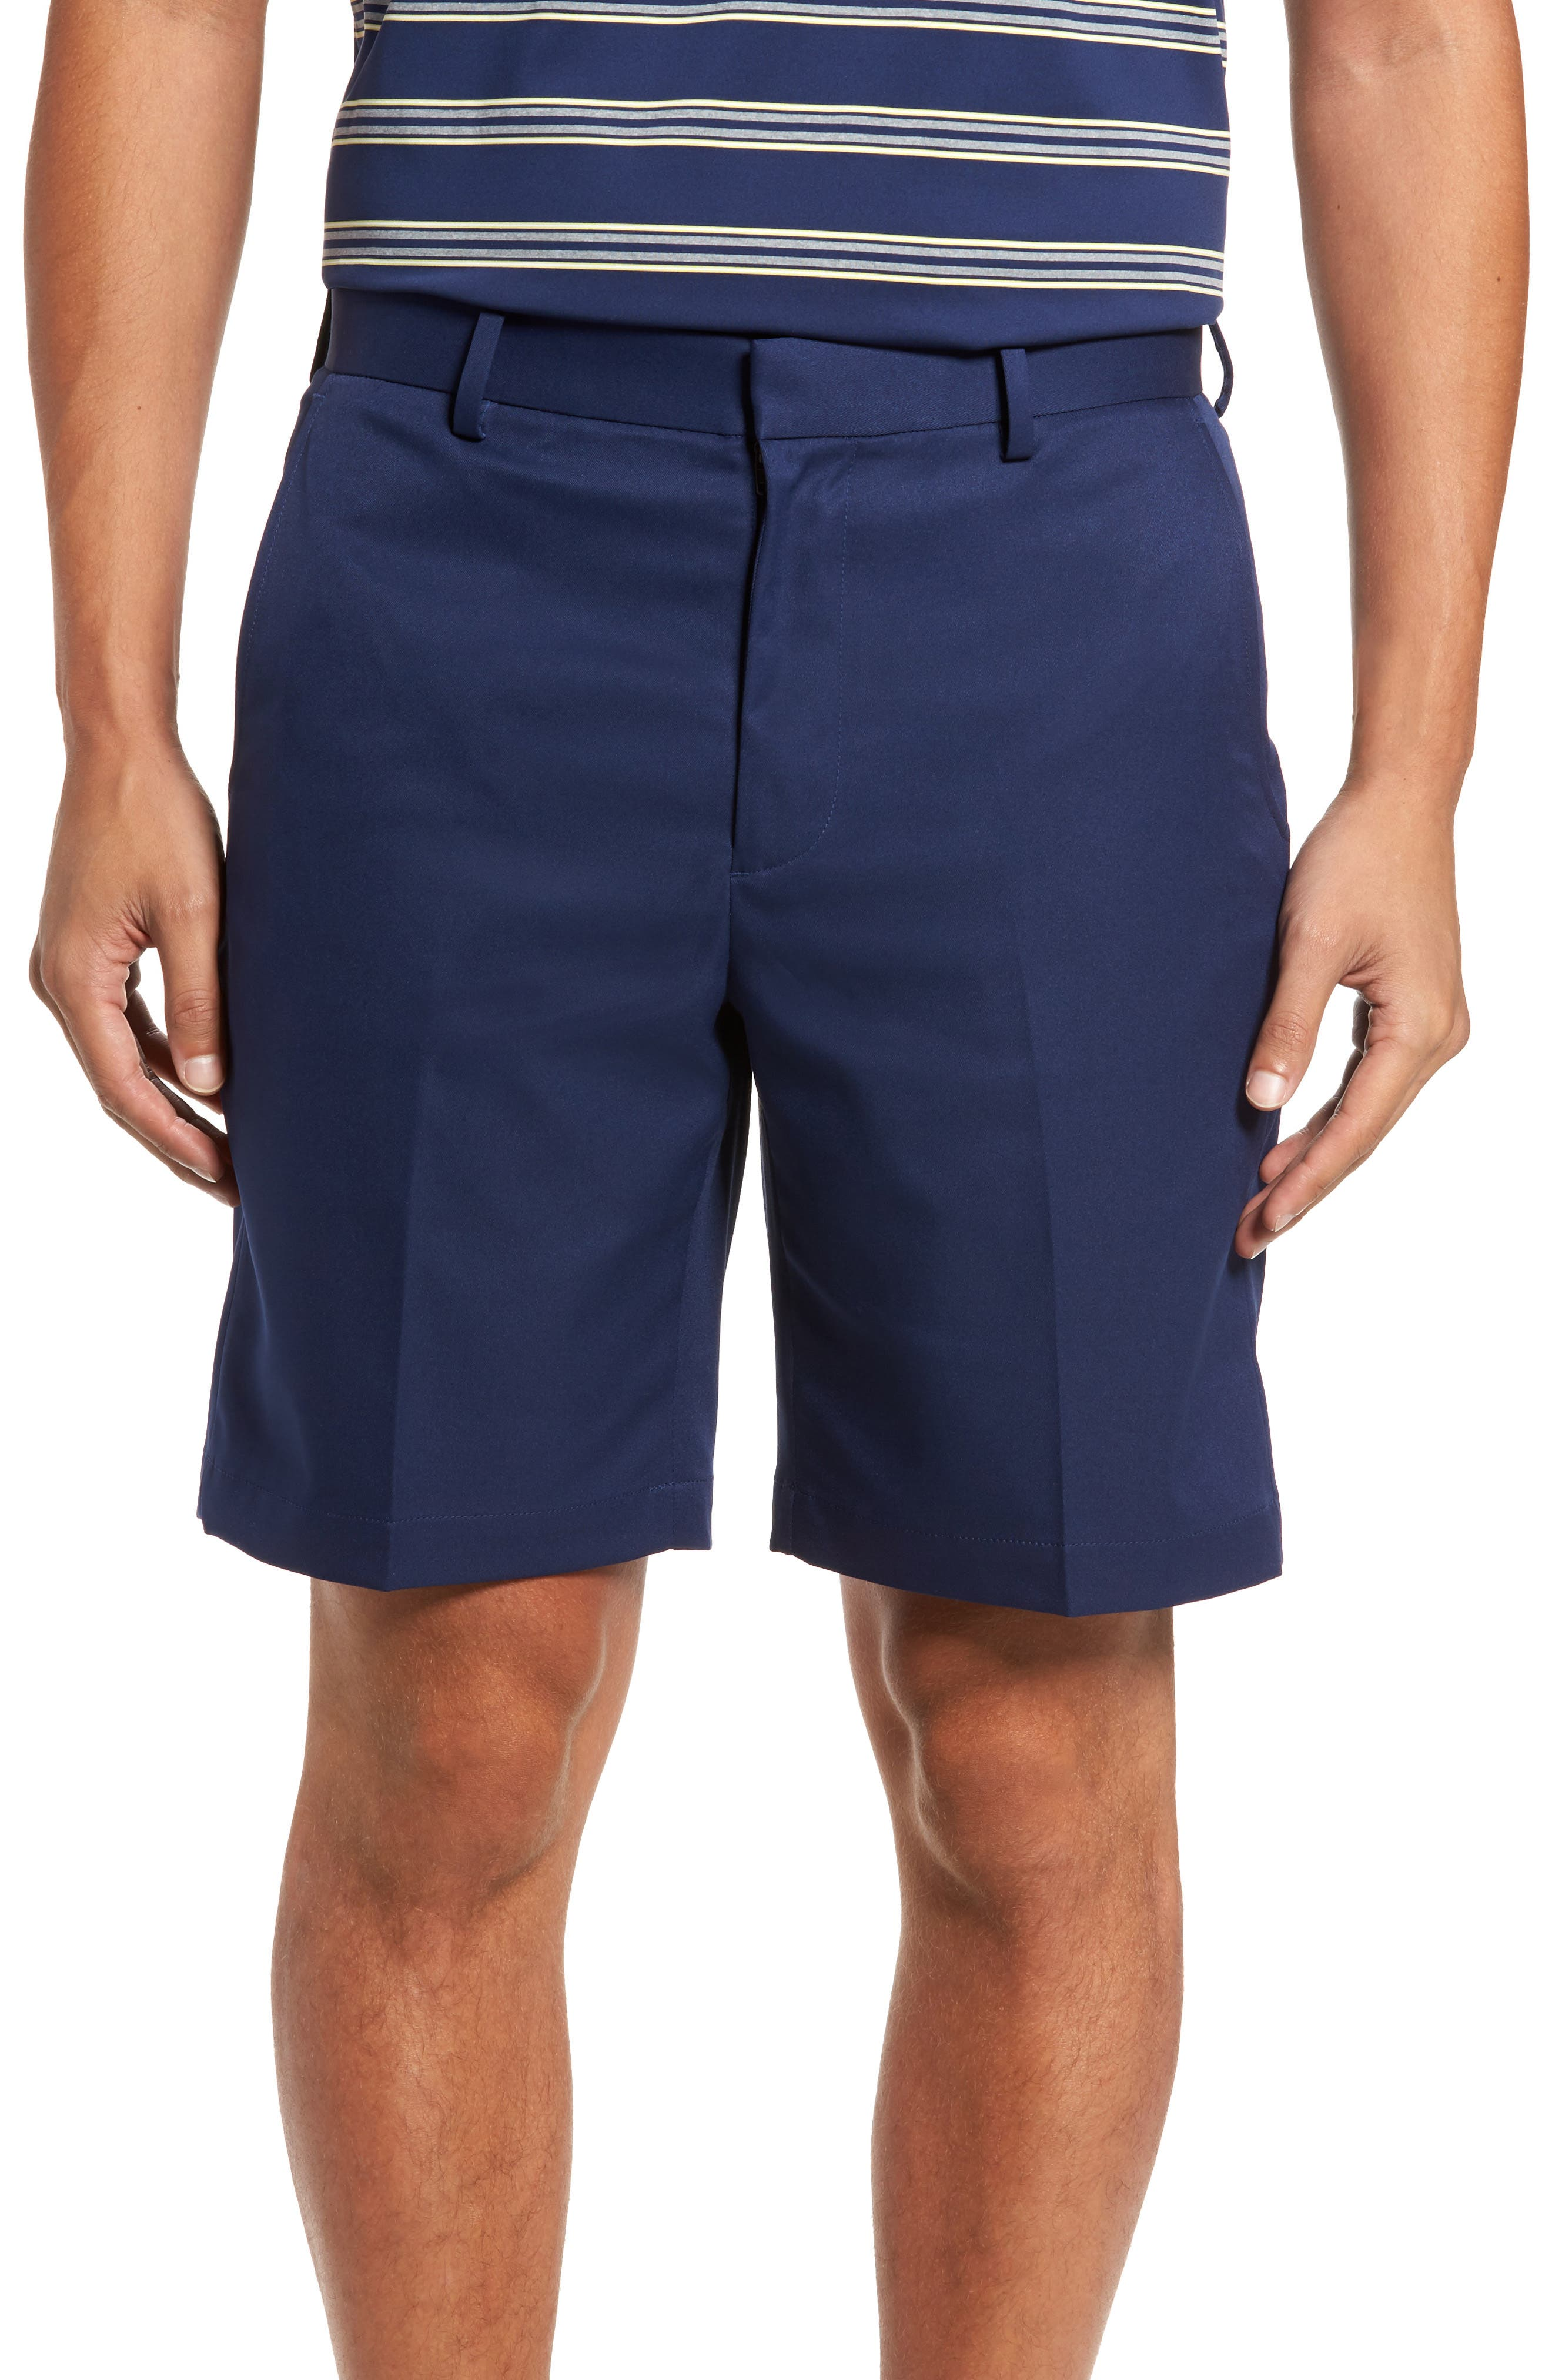 Alternate Image 1 Selected - Bobby Jones Flat Front Tech Shorts